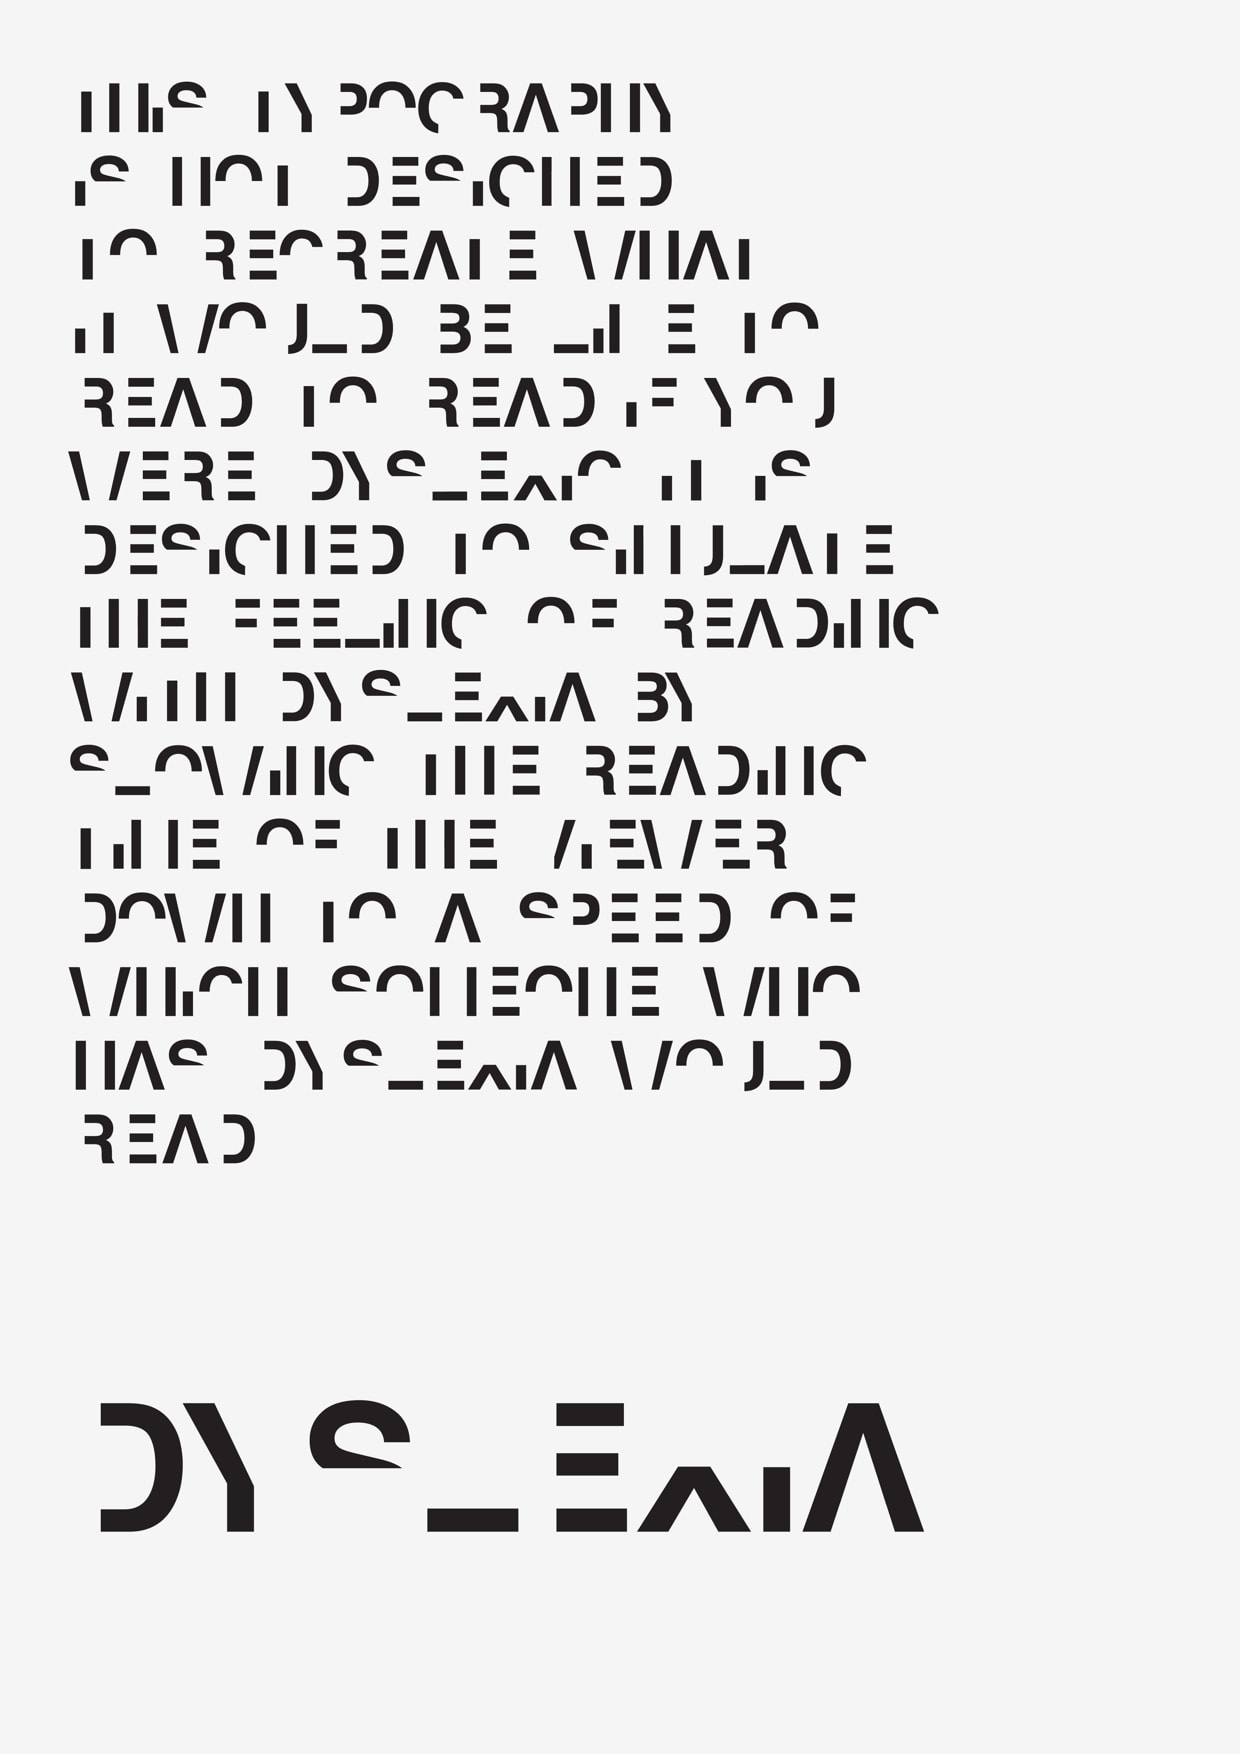 Understanding Dyslexia And Reading >> This Typeface Simulates Reading With Dyslexia The Digital